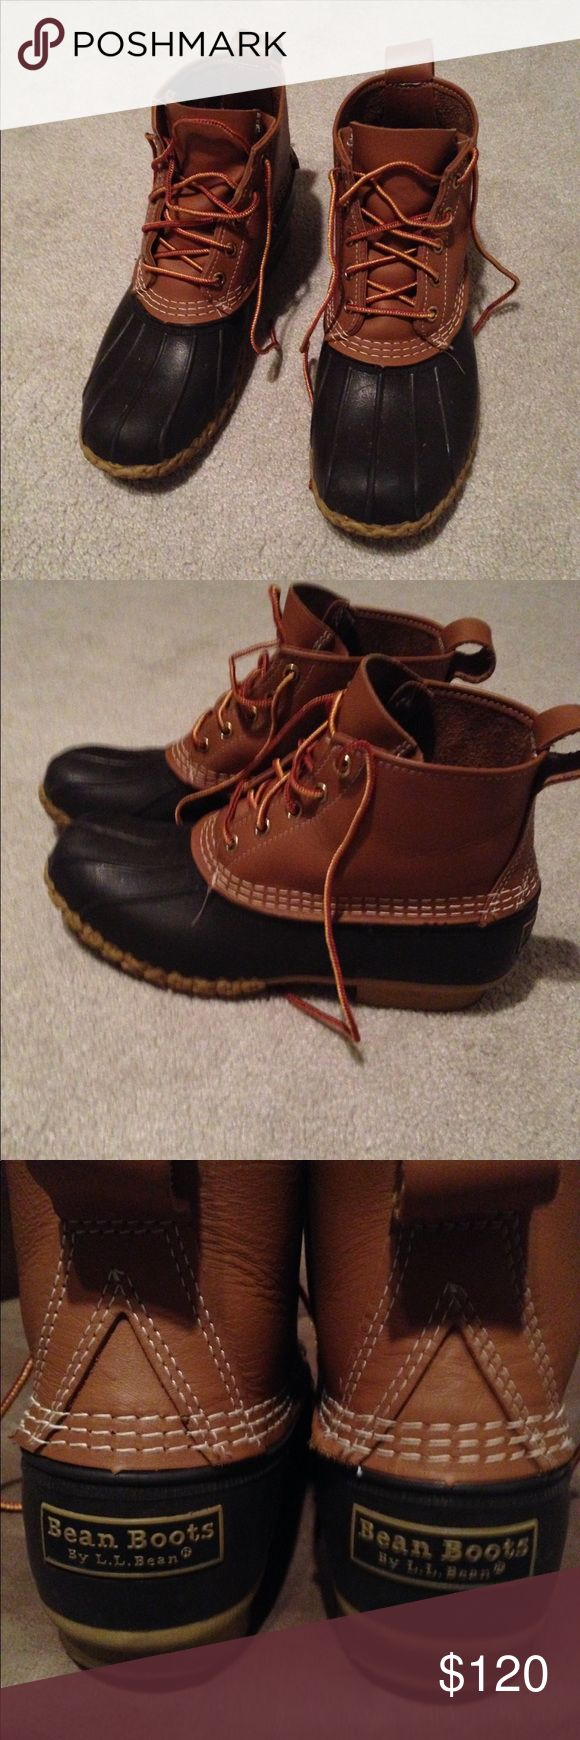 6 inch bean boots women's Hardly worn! Looks brand new. L.L. Bean Shoes Winter & Rain Boots